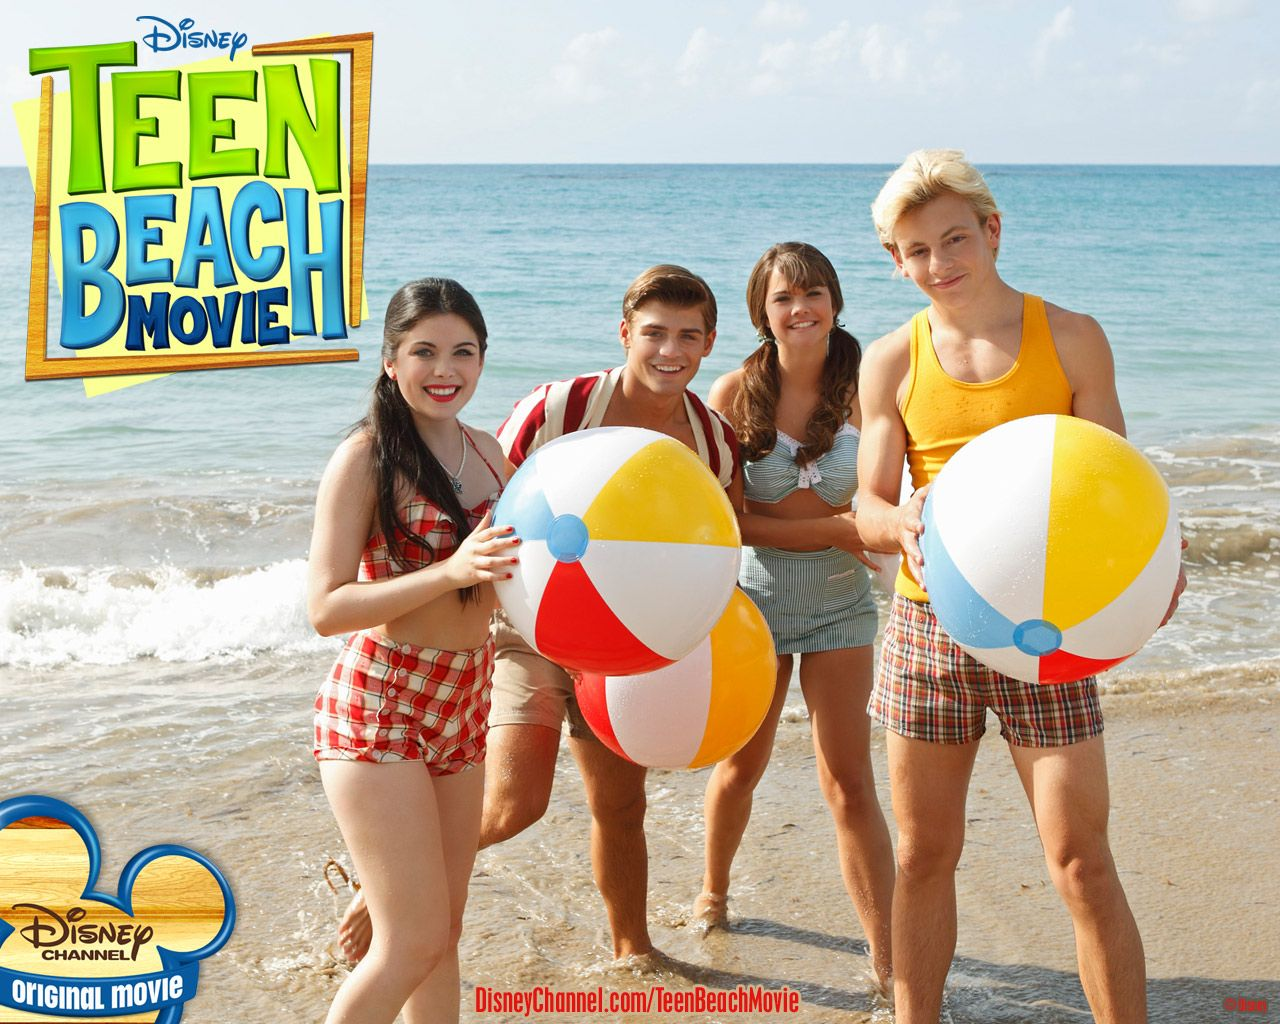 Teen Beach Movie - Party Kit | Disney Channel